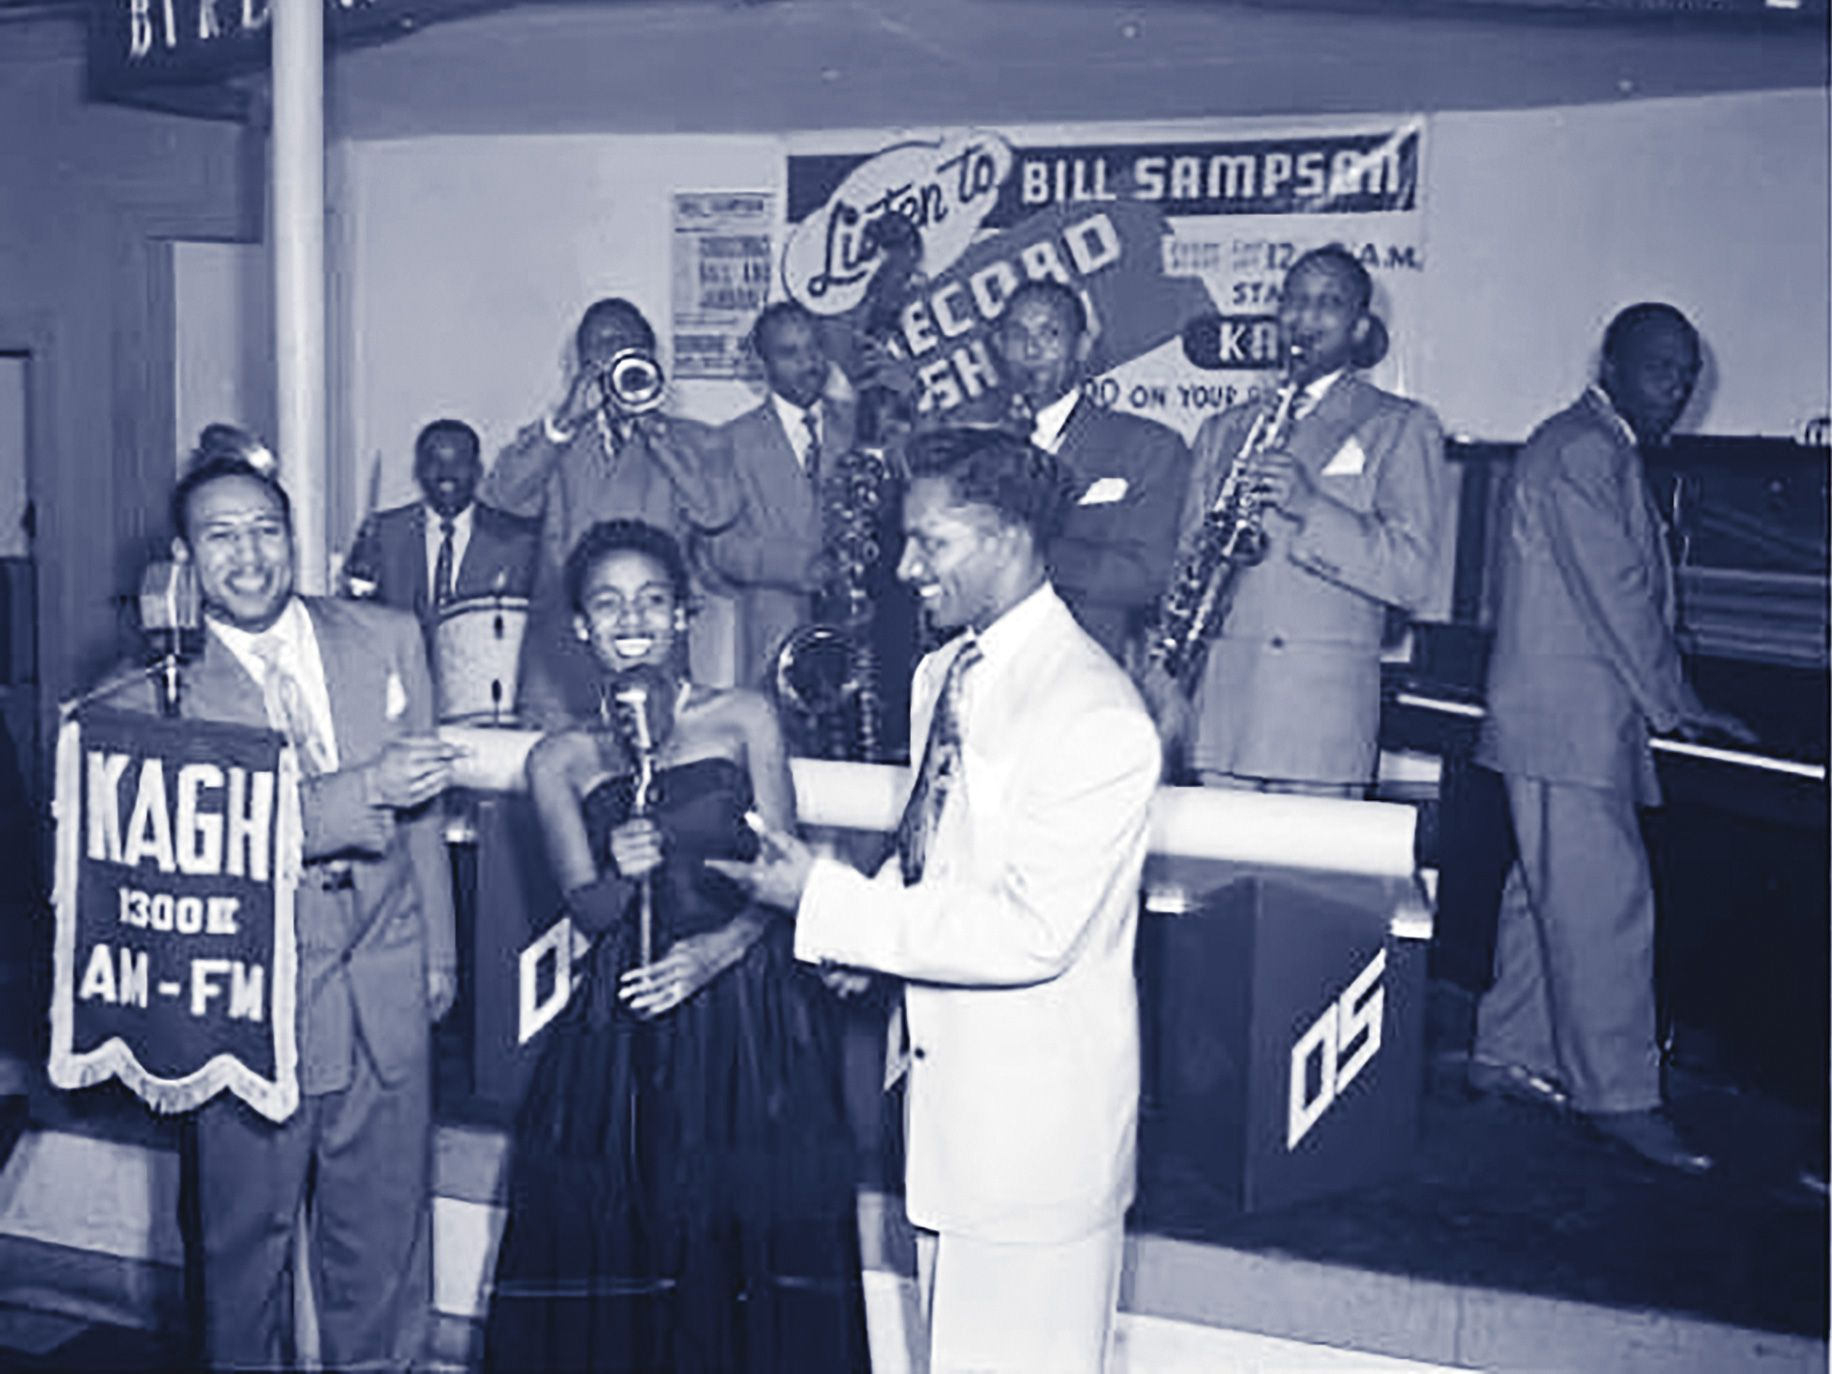 Jack's attracted greats like Buddy Collette, Duke Ellington, and Dexter Gordon. Radio host Bill Sampson (standing at left microphone) and his band often played at Jack's for KAGH.